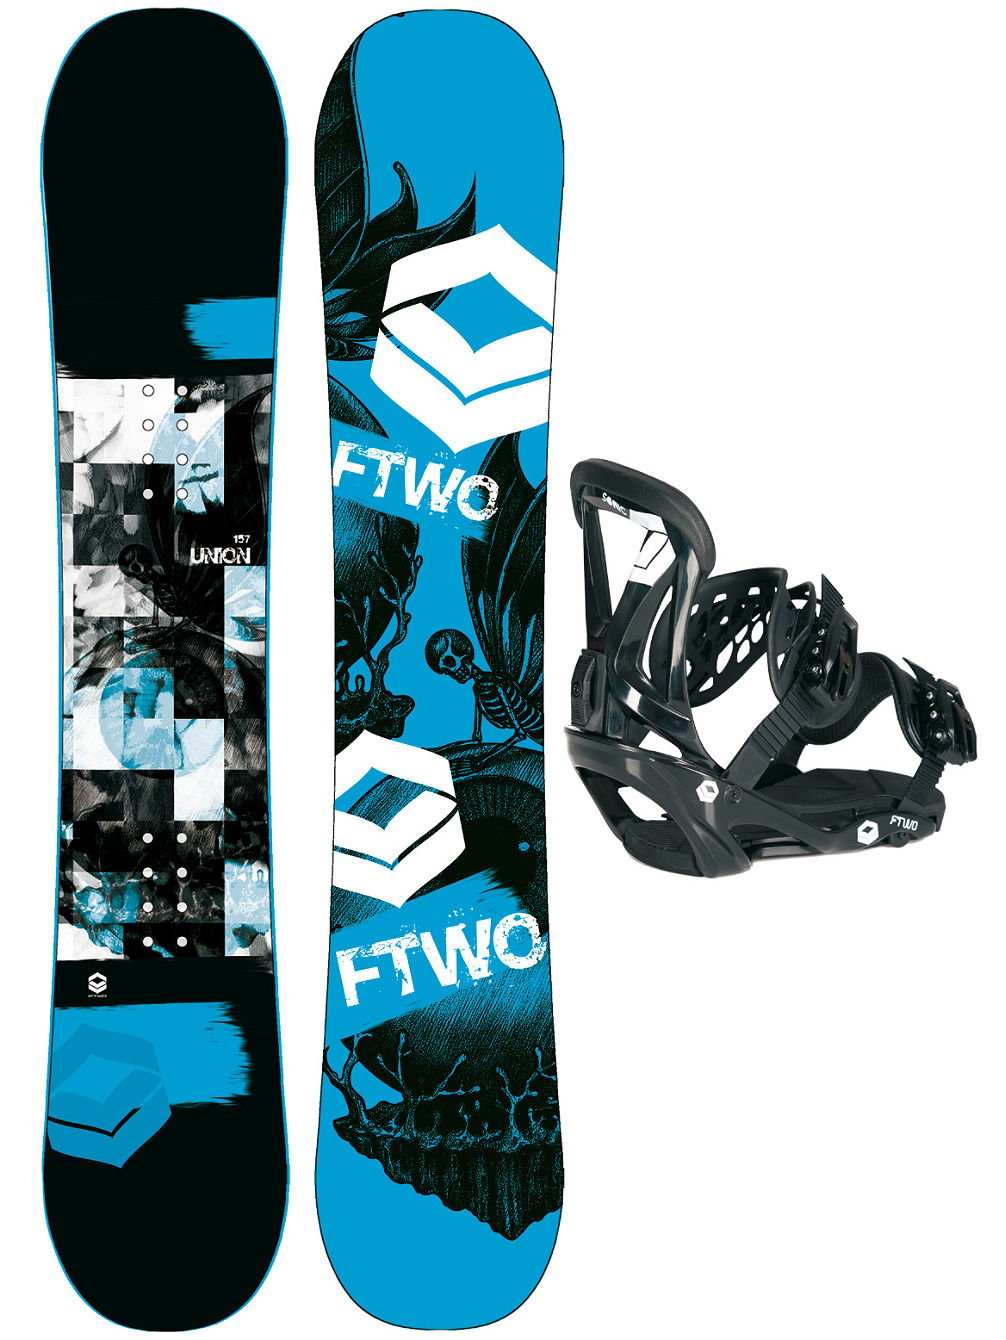 ftwo-union-blue-150-sonic-smo-m-blk